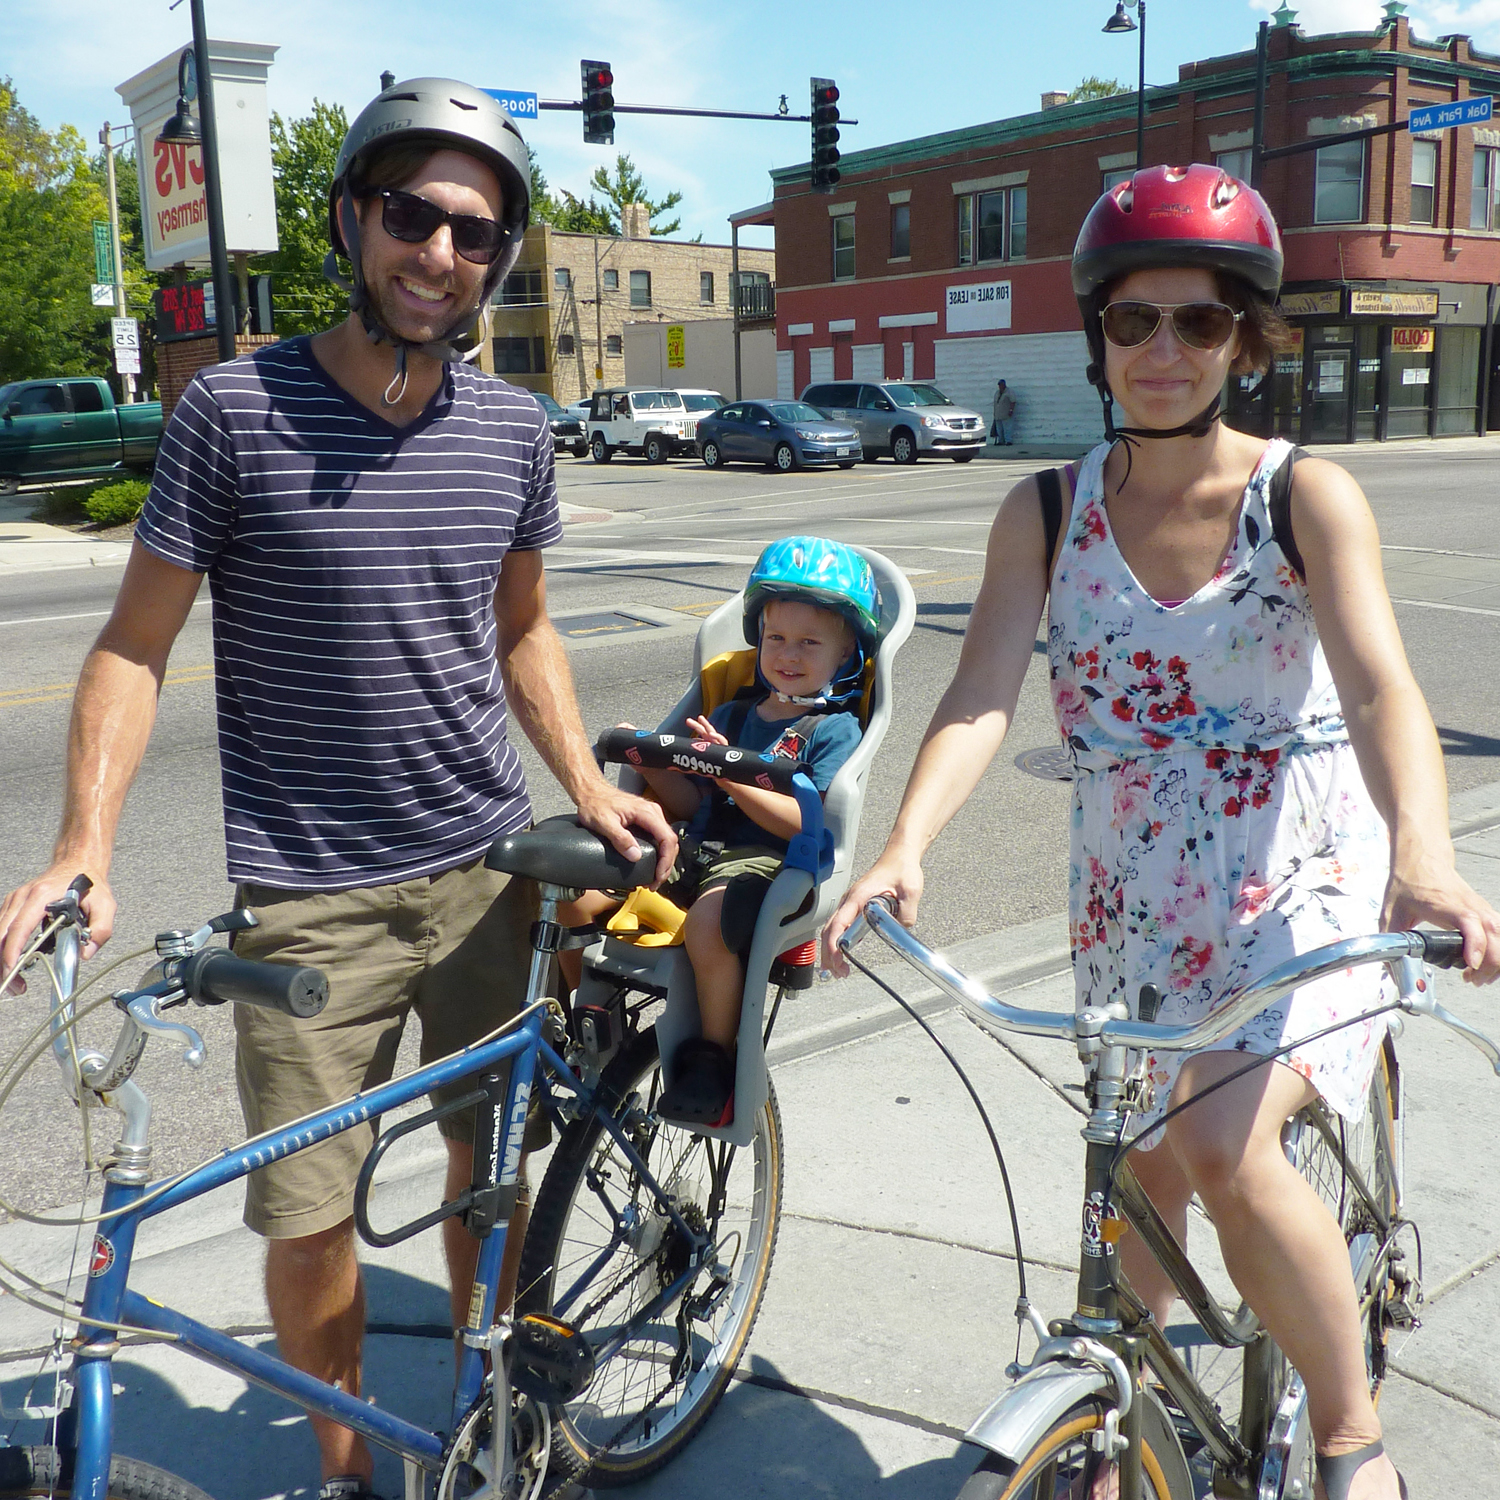 Father, mother and baby on bicycles.